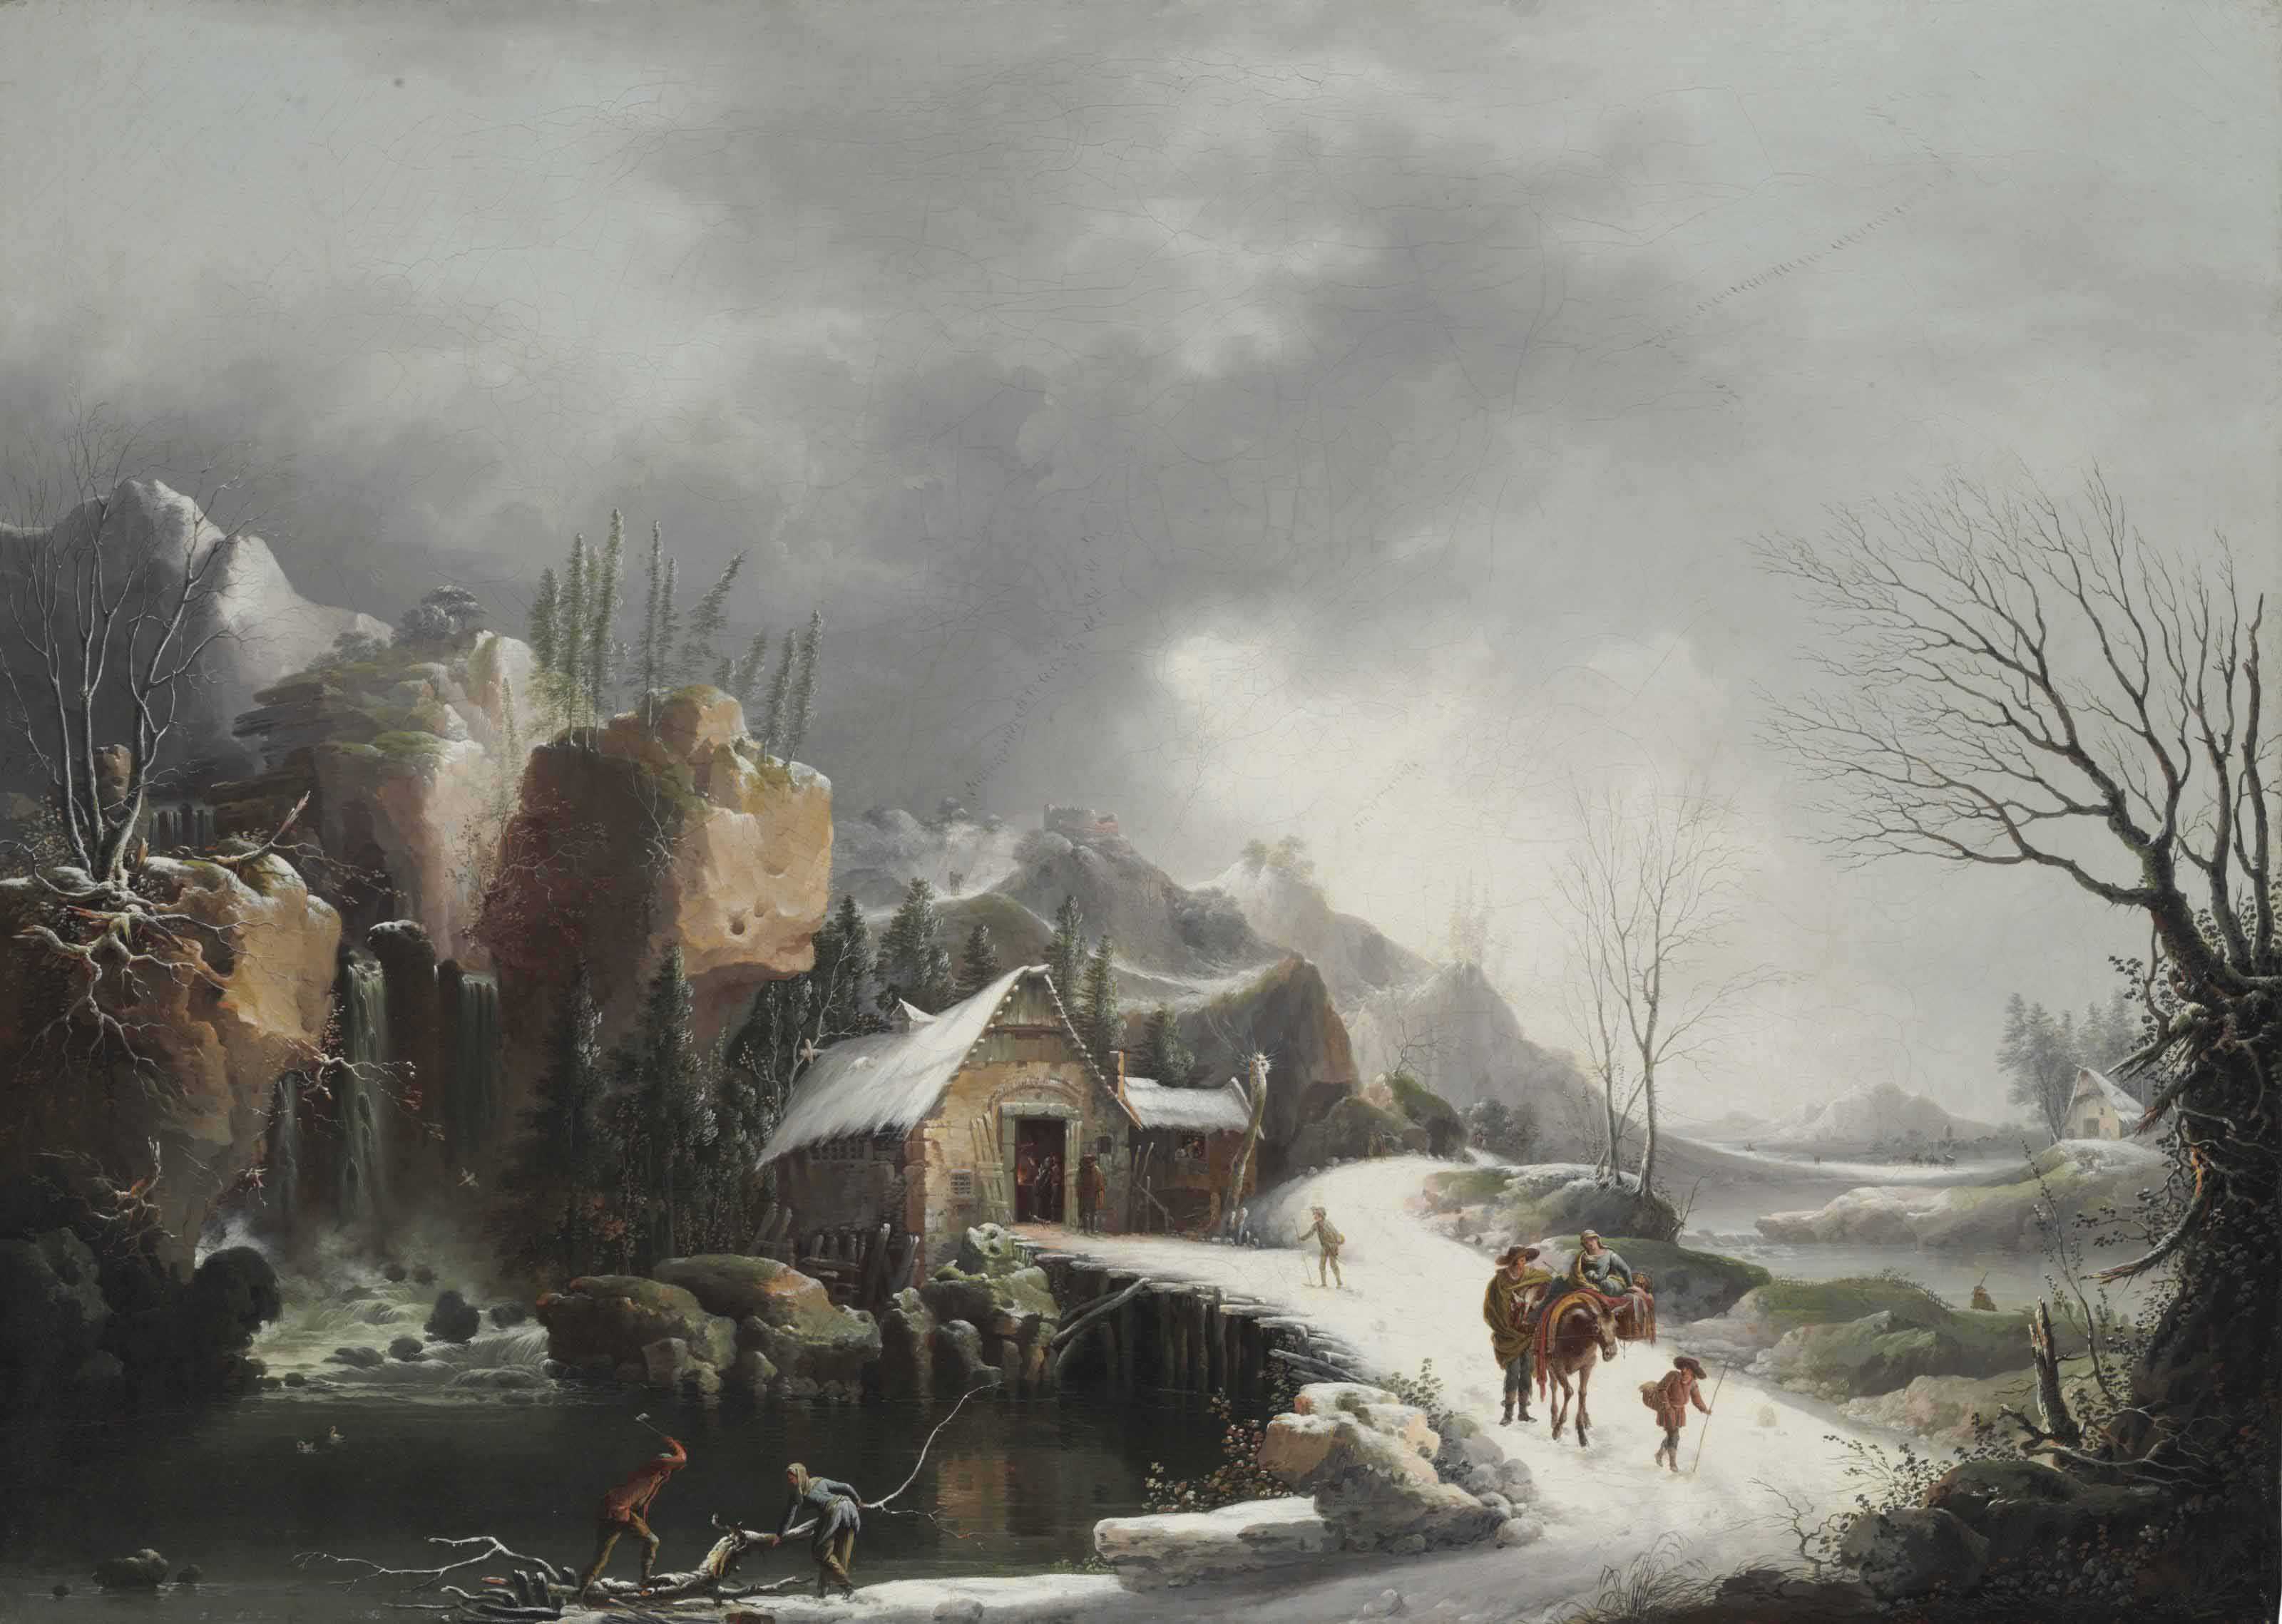 A winter landscape with travelers on a snowy path